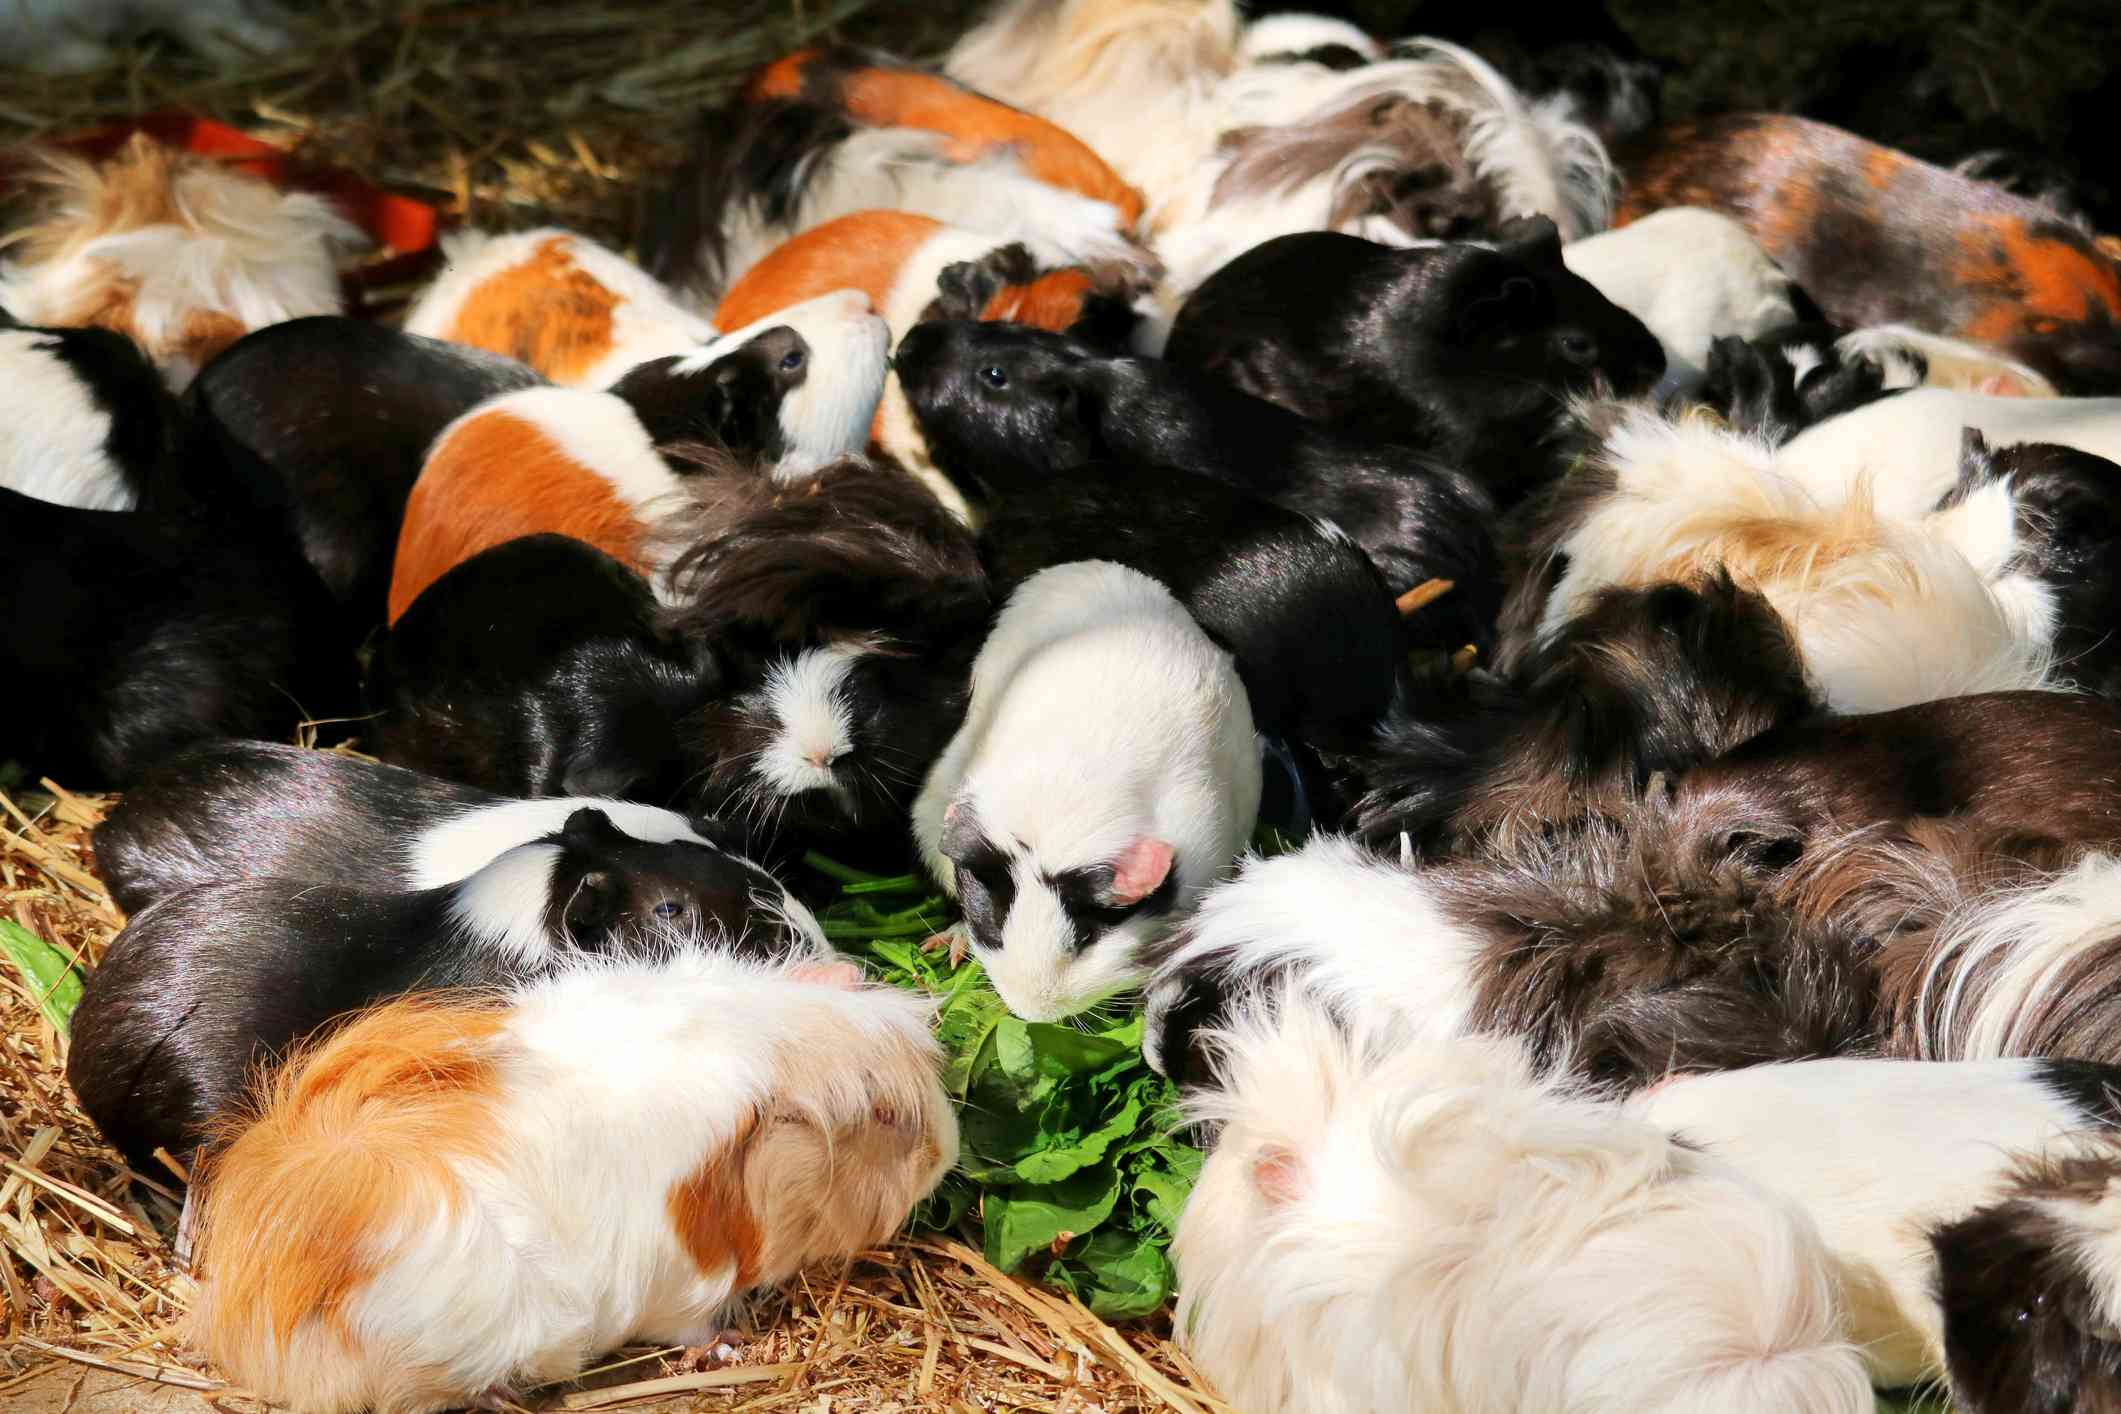 A herd of guinea pigs surrounding an edible green plant